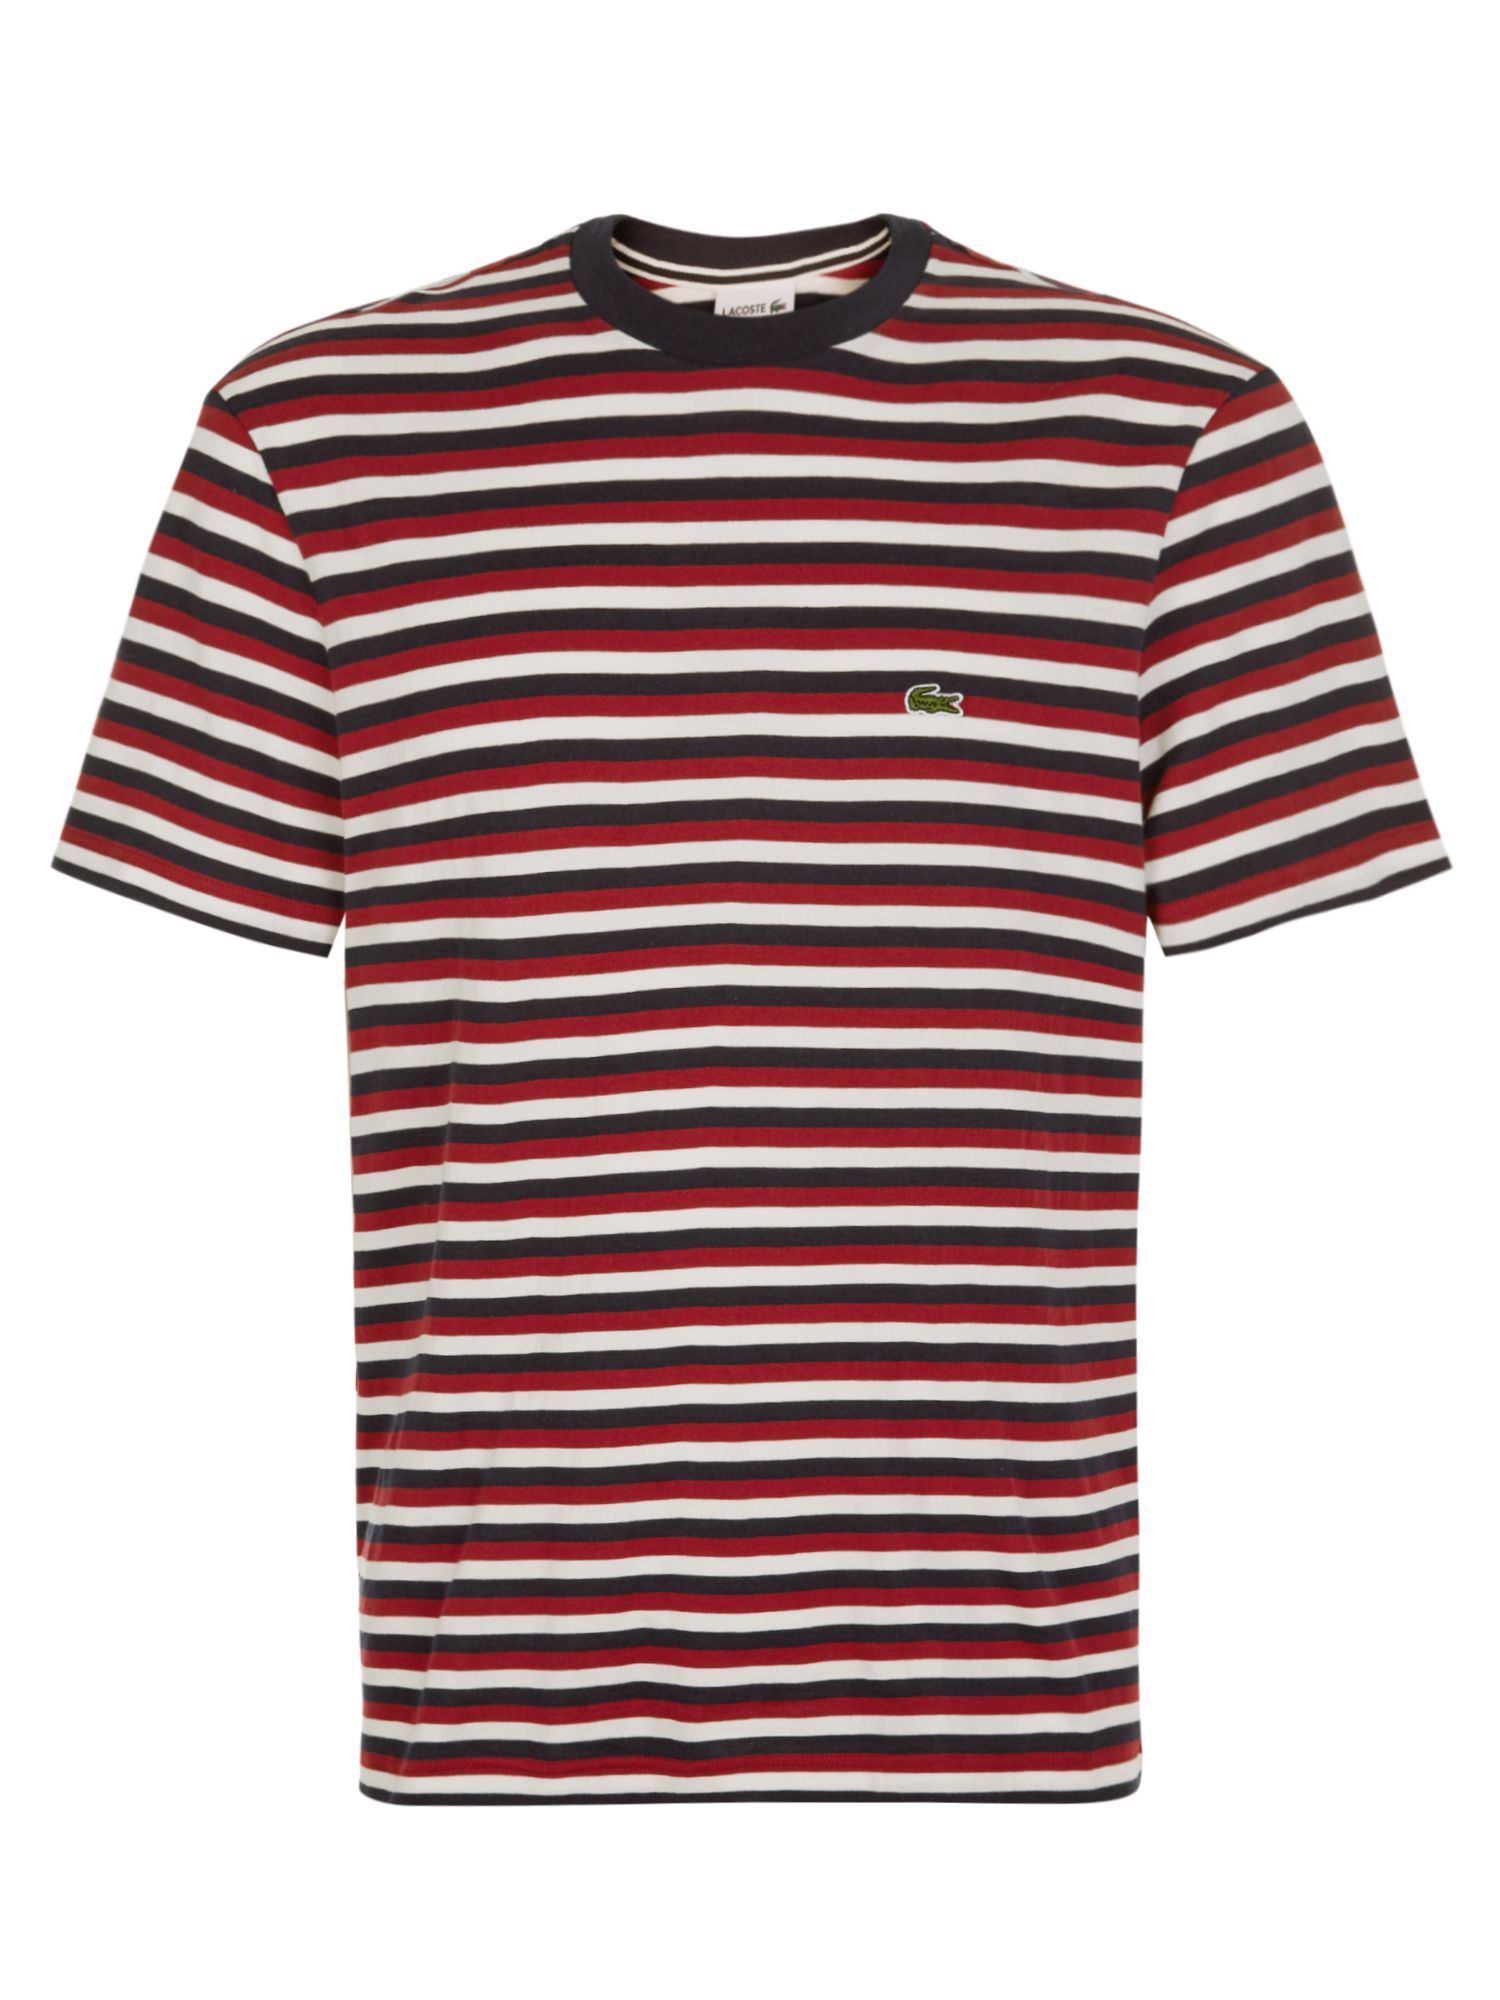 Men's Lacoste Stripped T-Shirt, Turkey Red